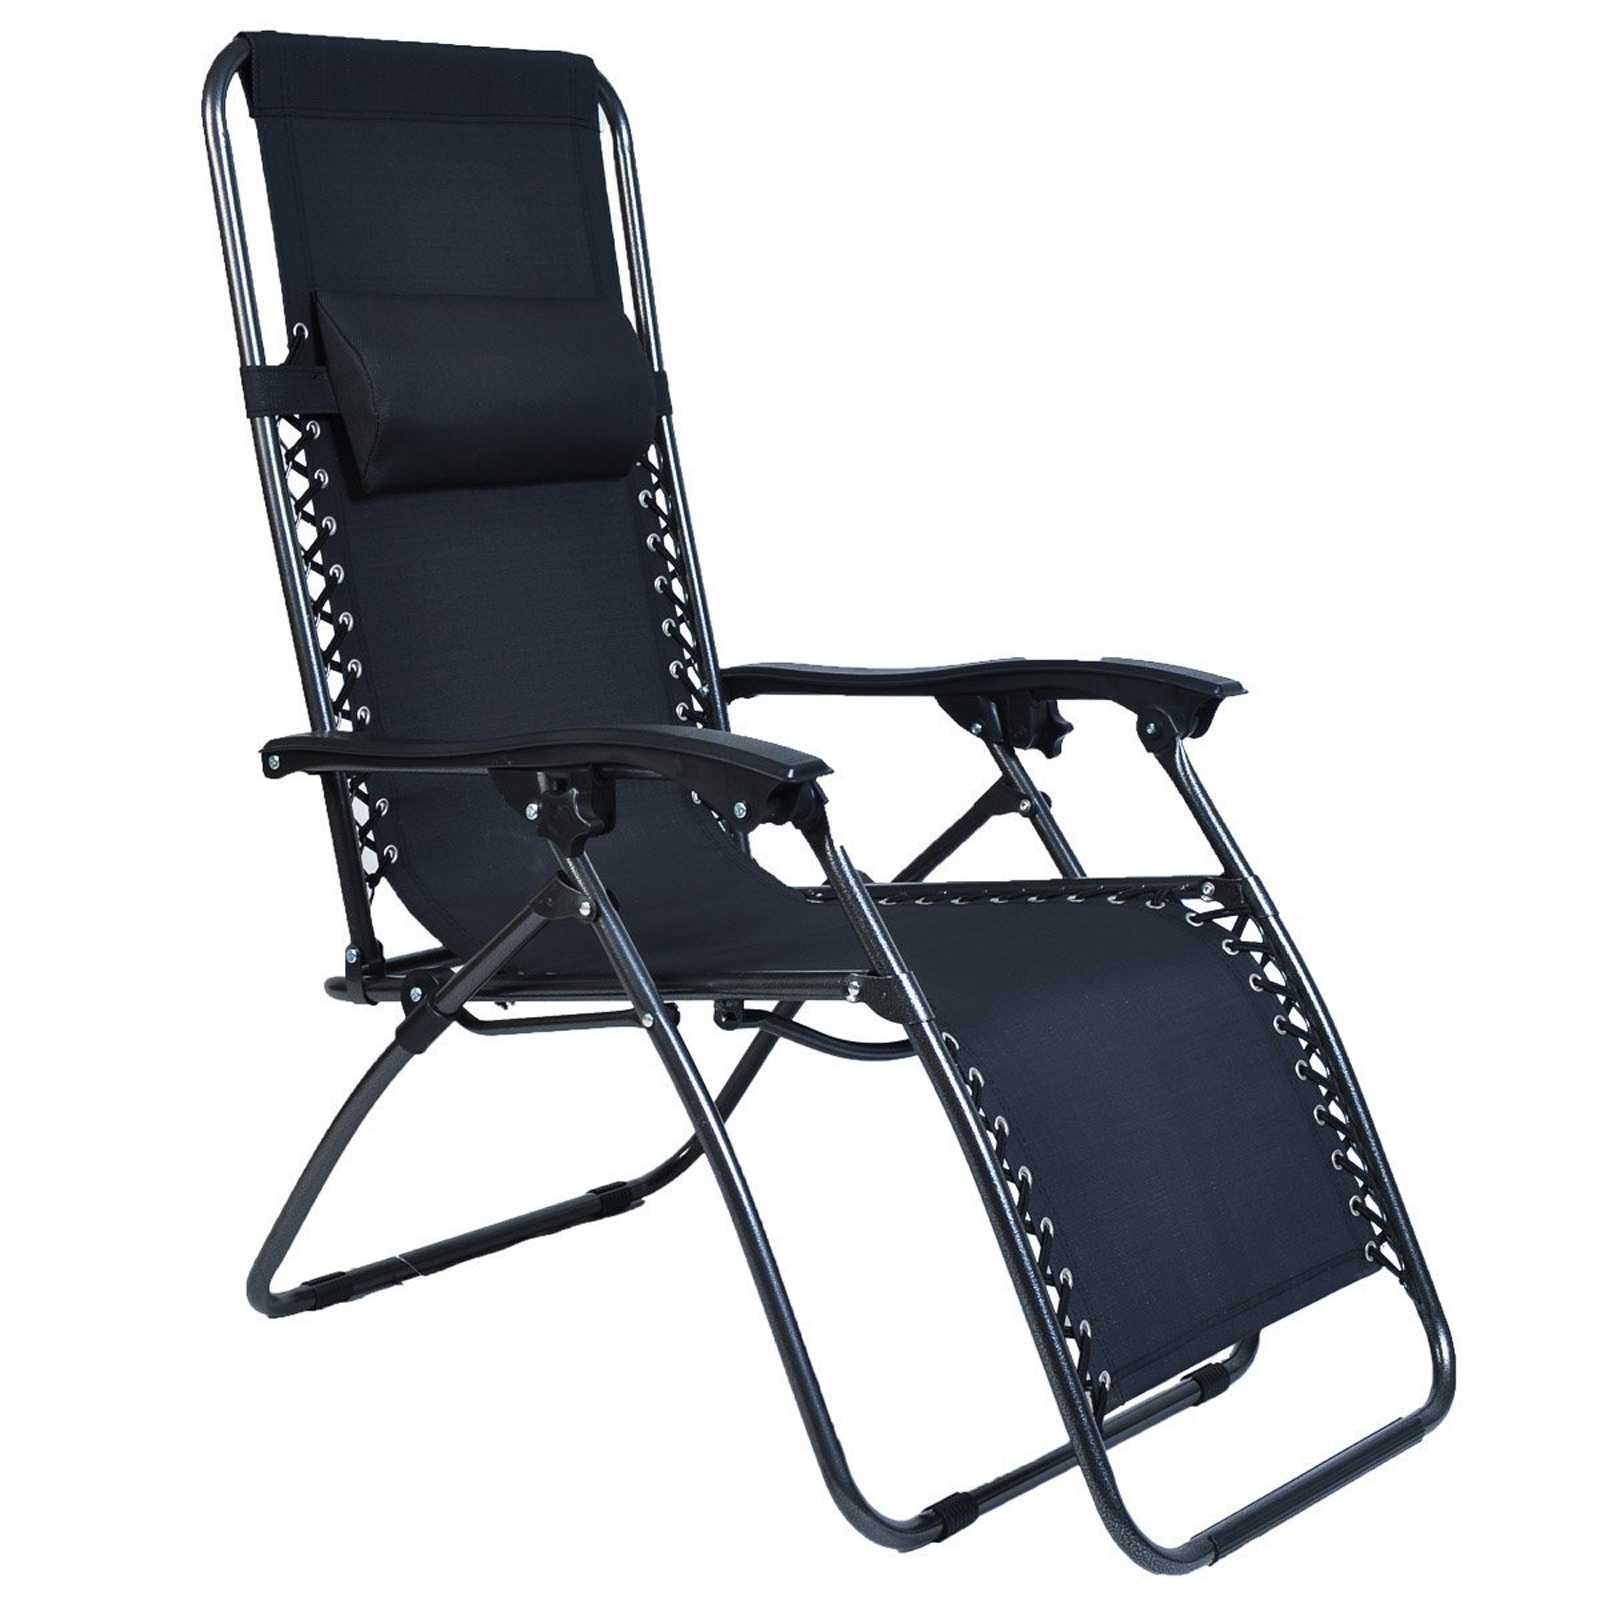 Zero folding patio outdoor lounge gravity chair recliner for Garden lounge chairs